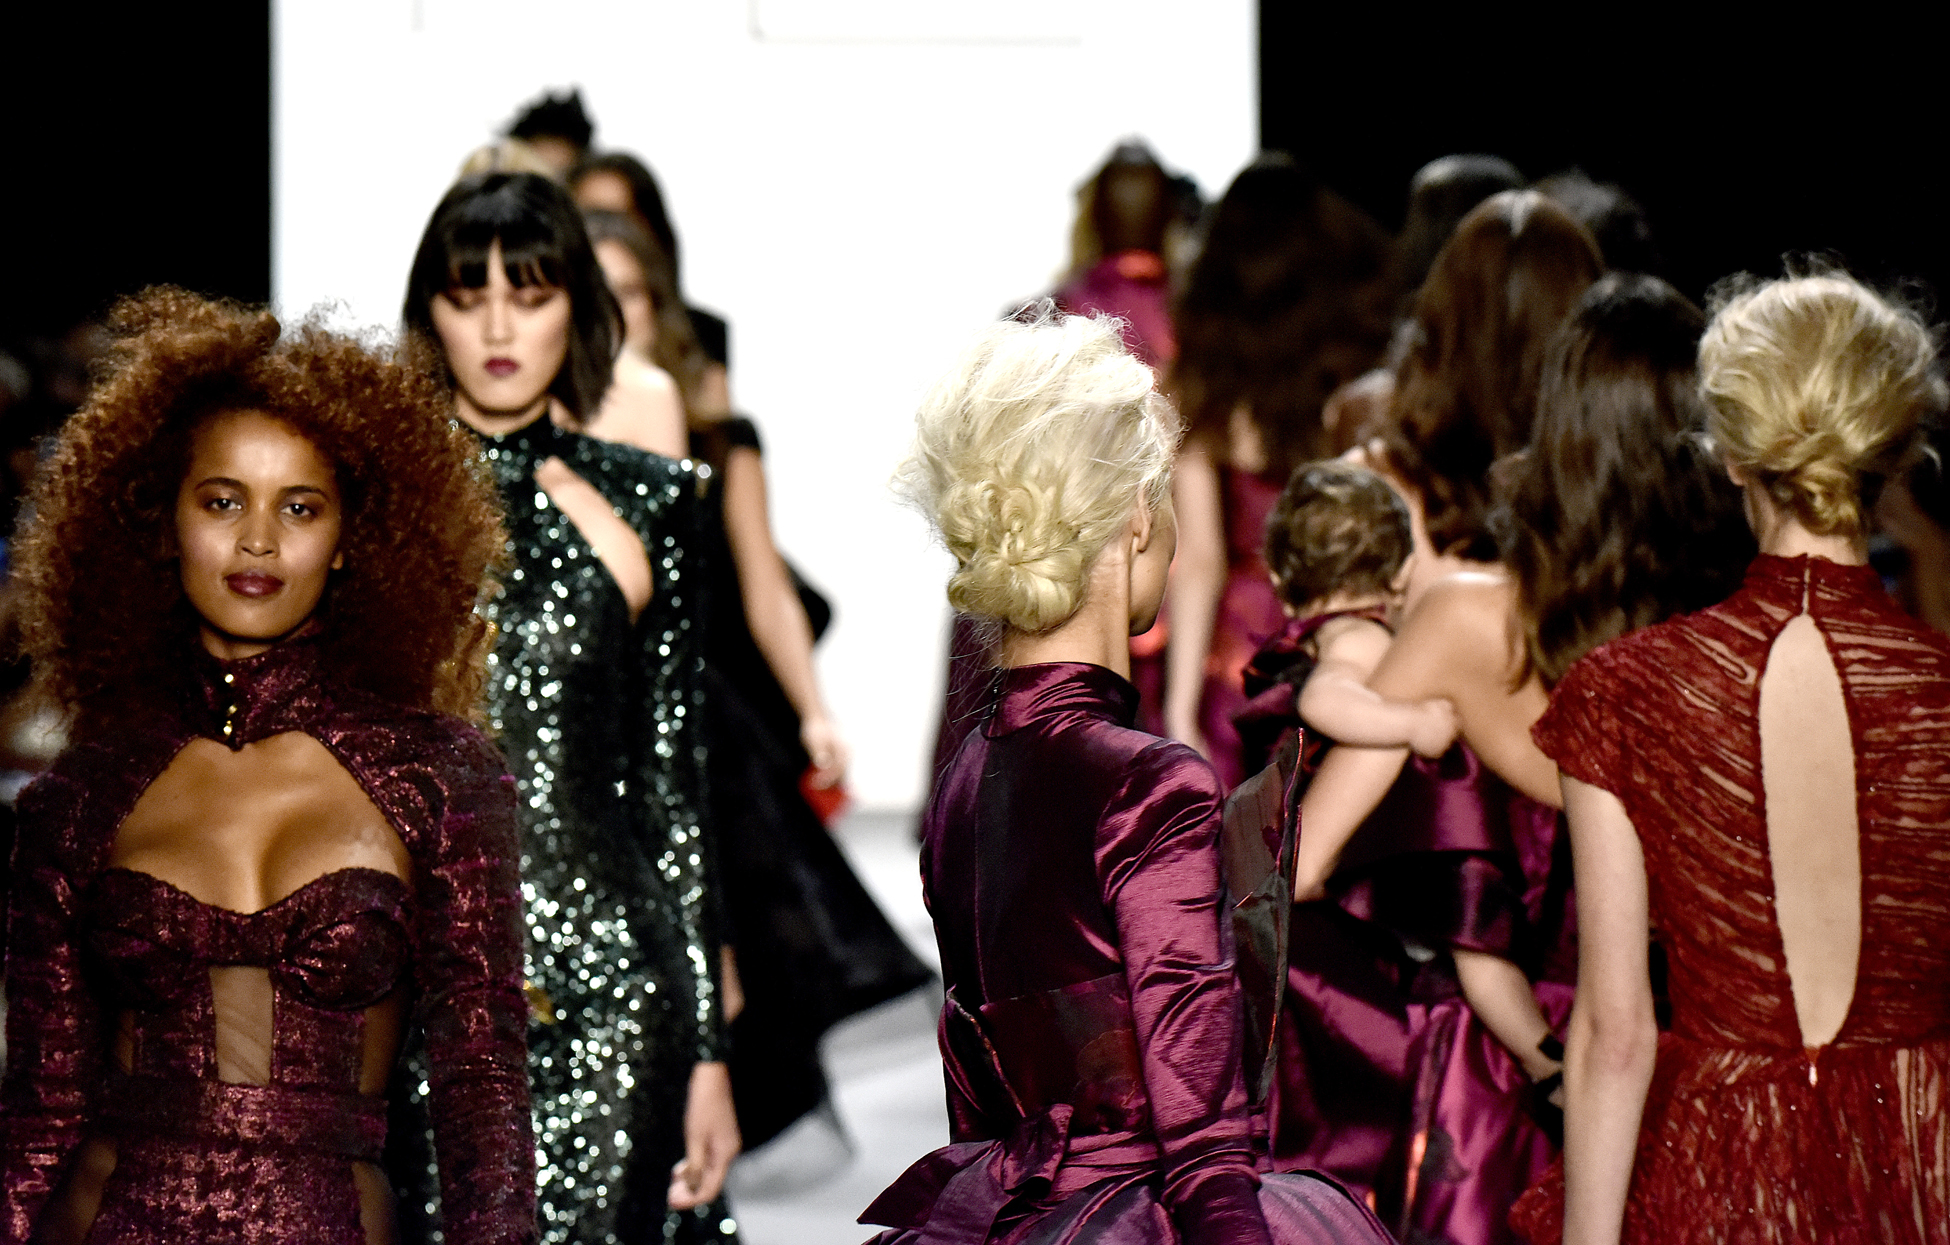 Michael Costello show, Runway, Spring Summer 2017, New York Fashion Week, USA - 08 Sep 2016